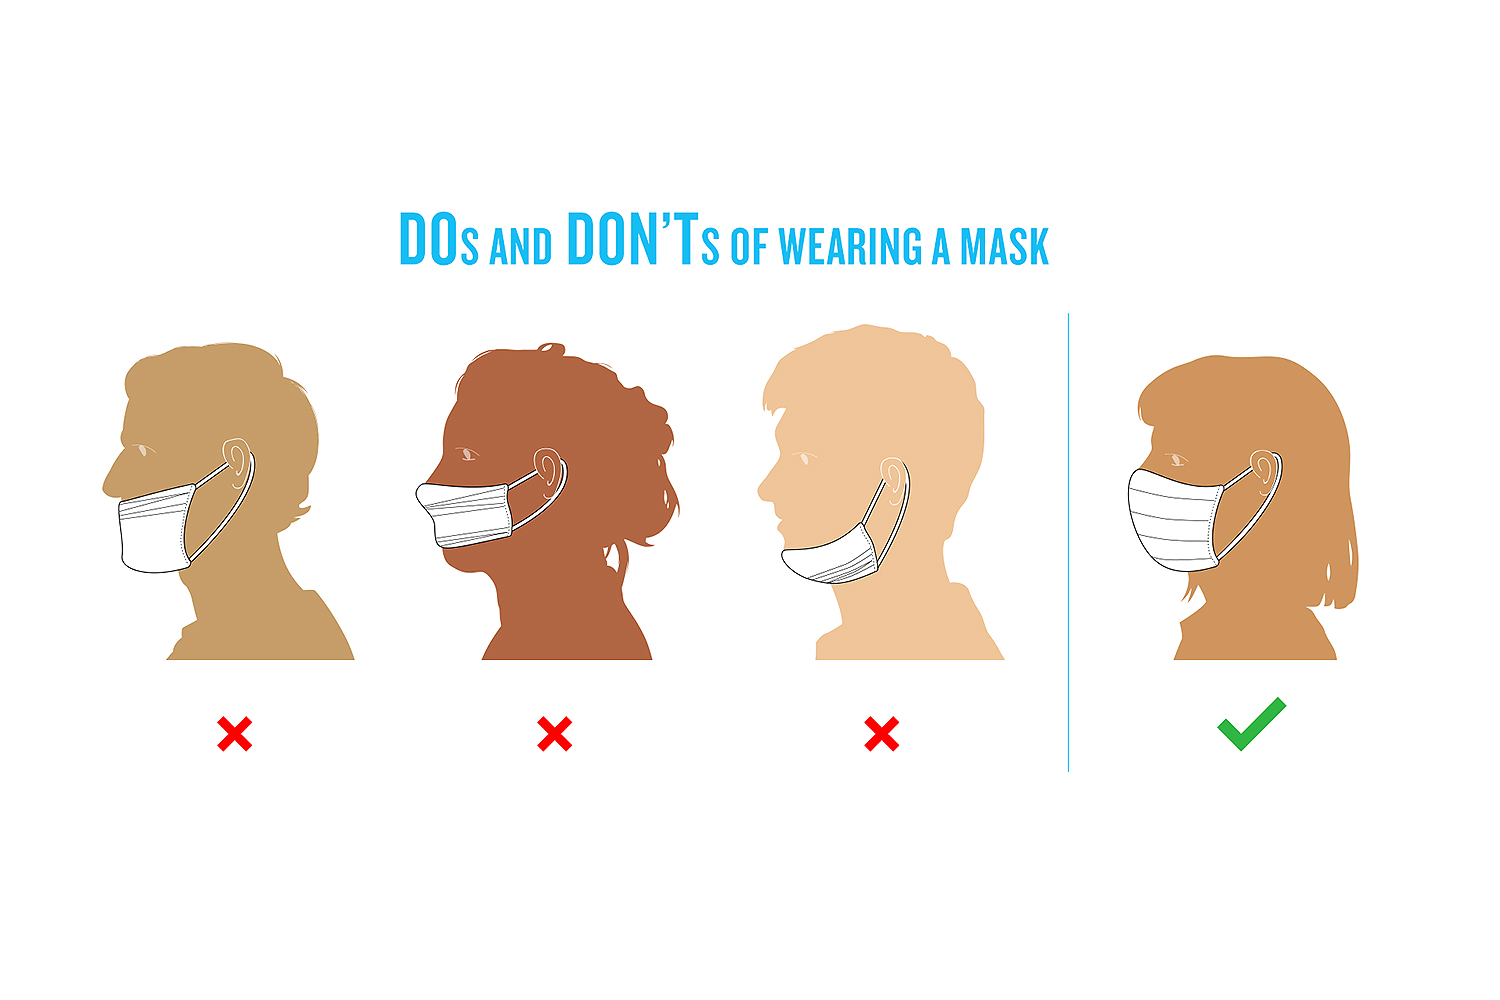 do and don't wearing a mask